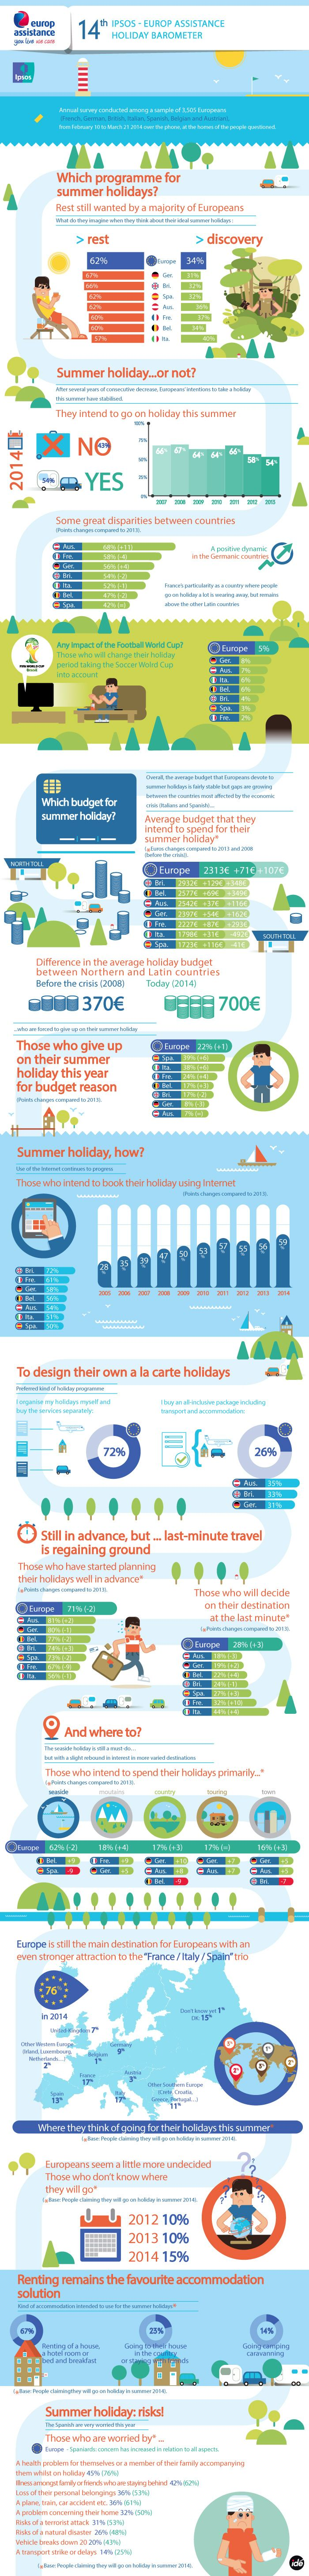 Ipsos-Europ Assistance Holiday Barometer 2014 - Report (Tourism. Capture the Scene of Knowledge http://www.tourismcsk.com/infographics/i-demand)